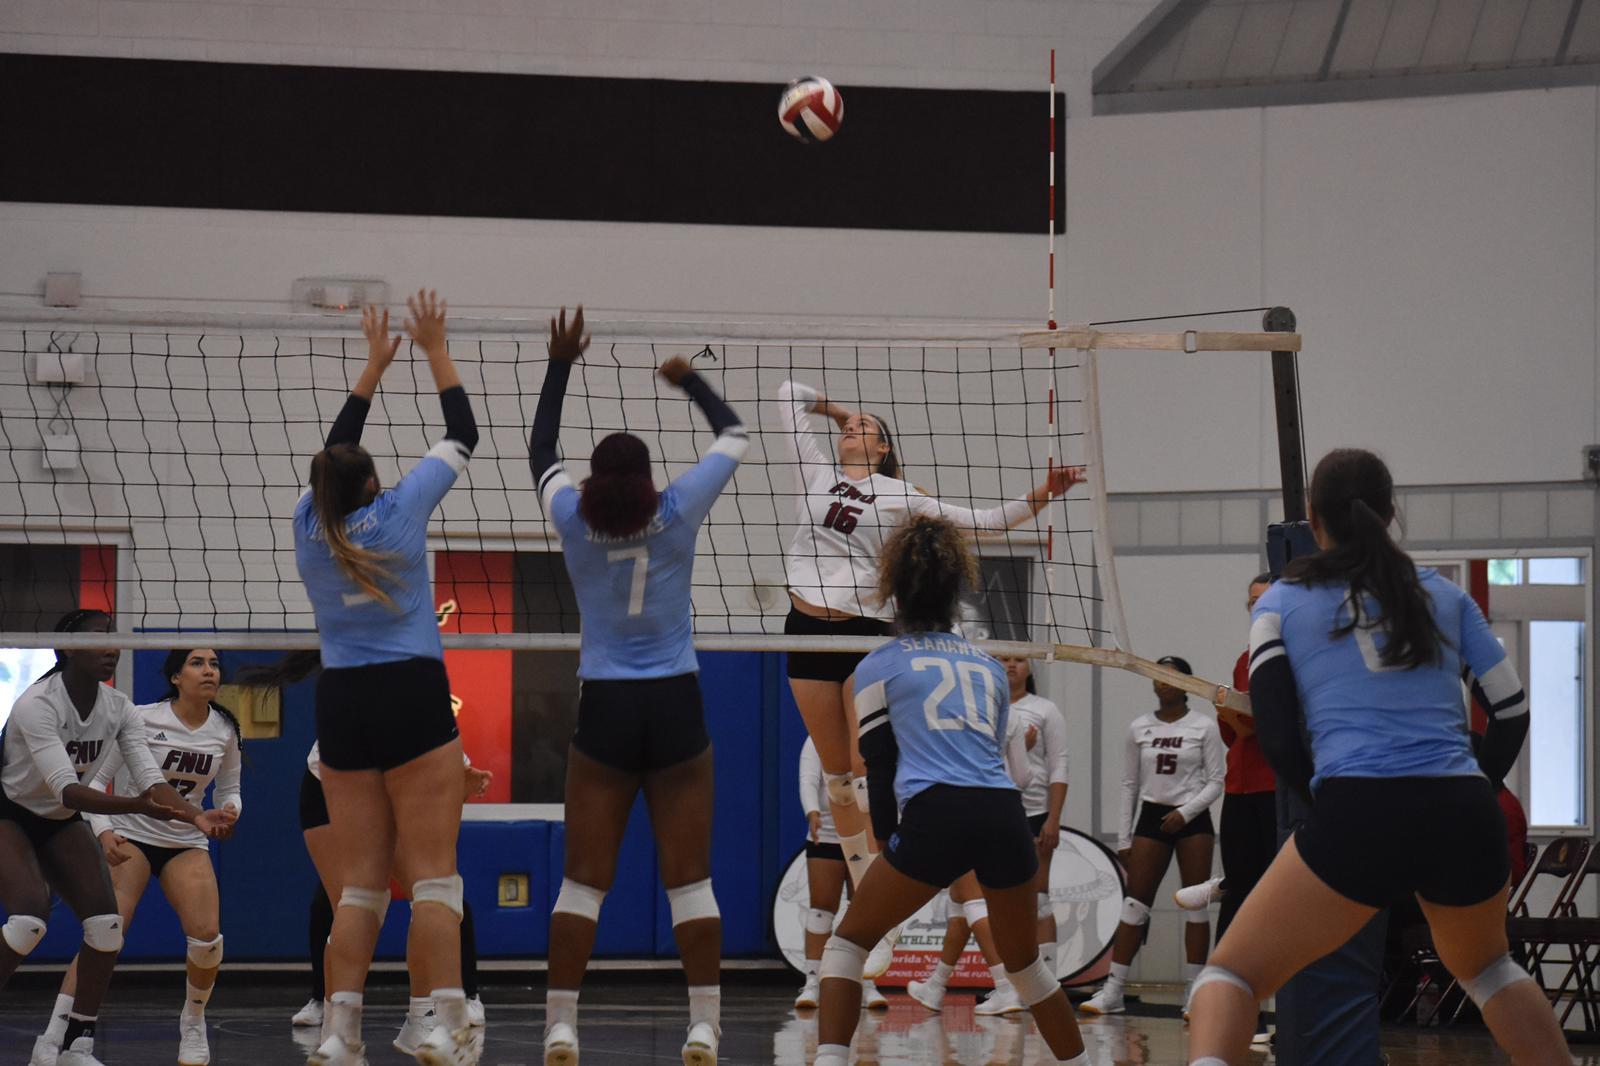 FNU Volleyball player attacking the ball